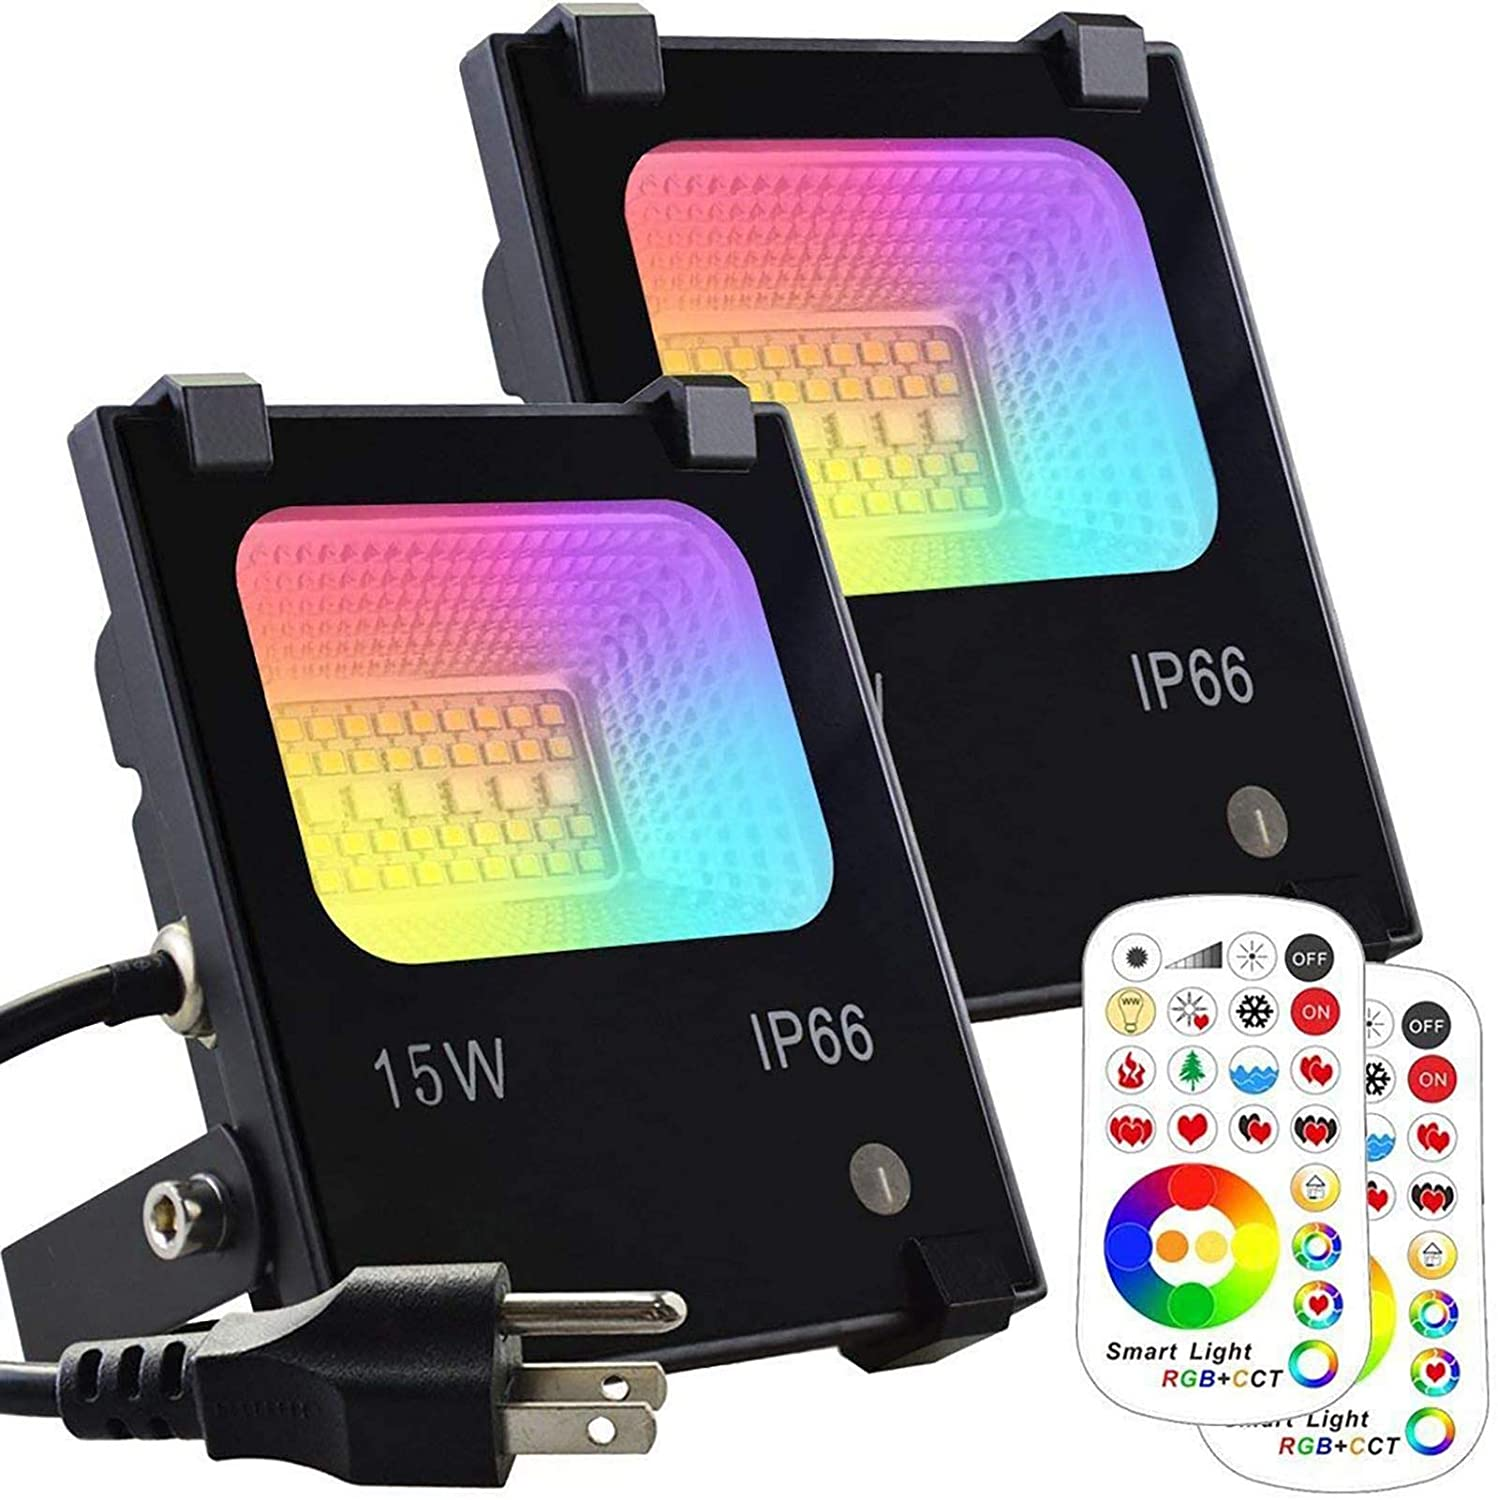 MELPO 15W LED Flood Light Outdoor, Color Changing RGB Floodlight with Remote, 120 RGB Colors, Warm White to Daylight Tunable, IP66 Waterproof, US 3-Plug (2 Pack): Home & Kitchen